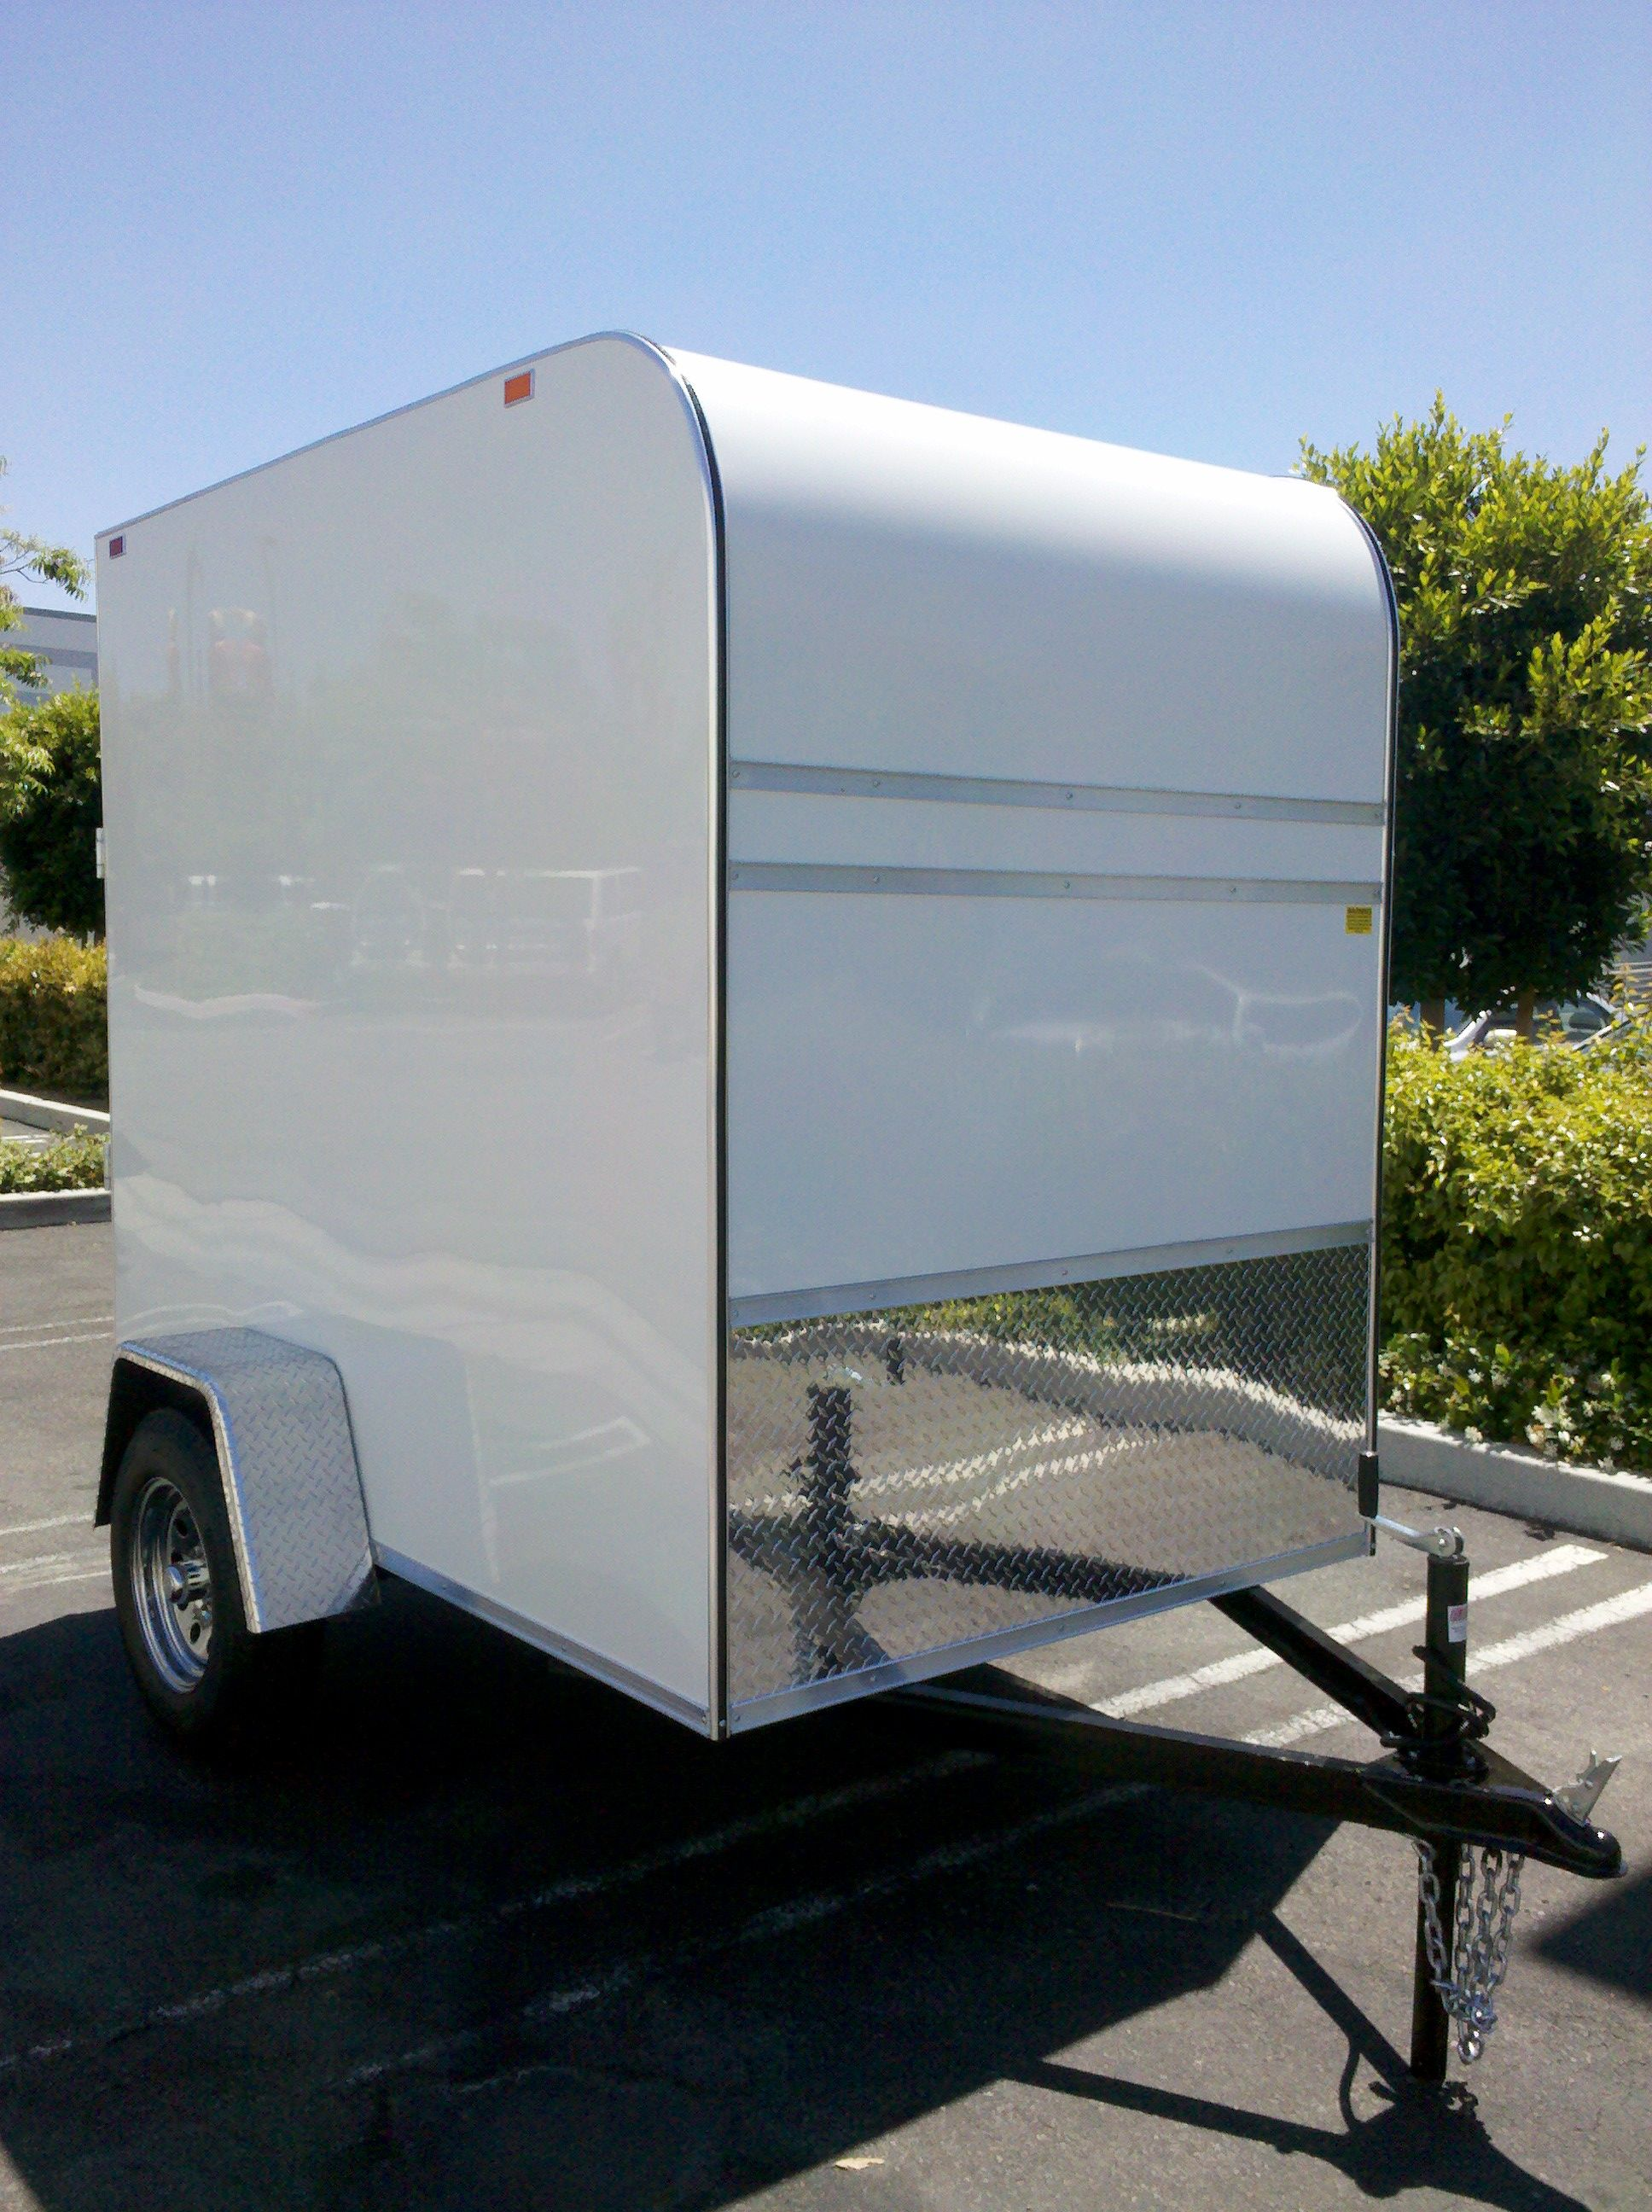 8 Toy Hauler With 5 Wide And 6 5 Tall Box Perfect For Quad Or Motorcycle Easy To Tow With Smaller Vehicles For Rent Or Sale Toy Hauler Small Cars Quad